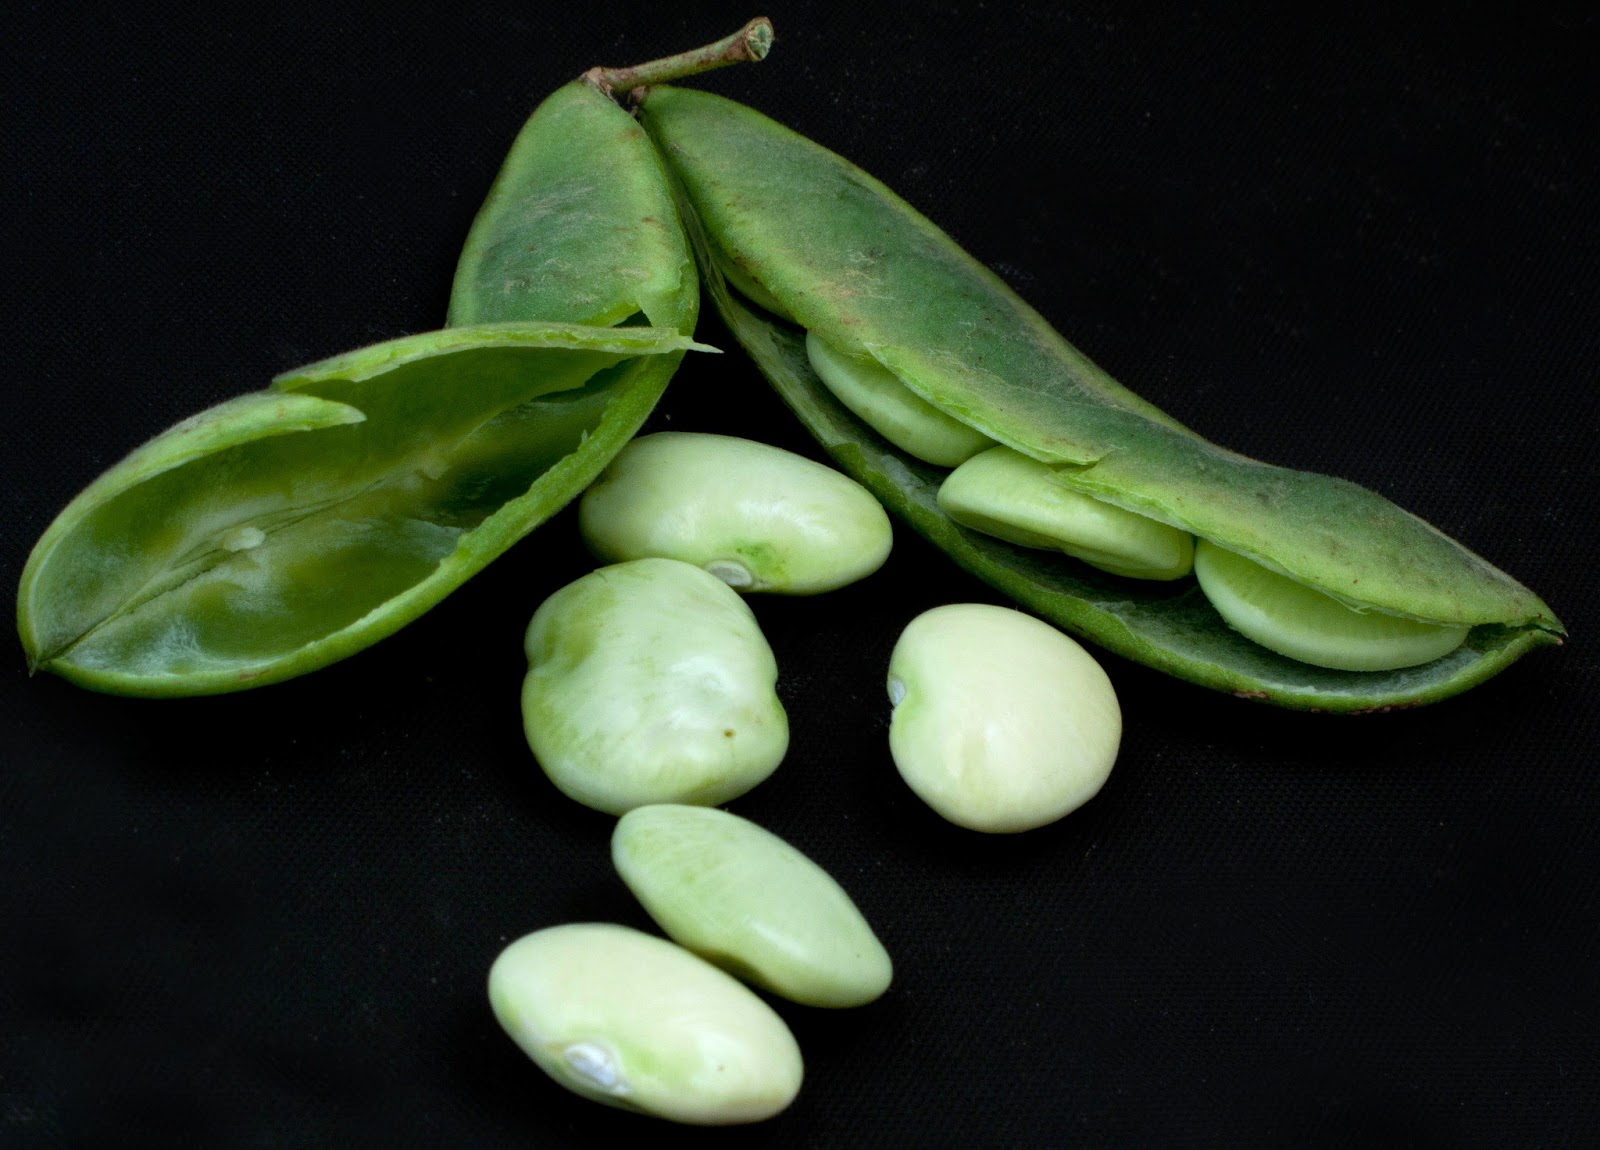 Blog fuad informasi dikongsi bersama 10 everyday fruits and vegetables that are poisonous for How to cook fresh lima beans from garden